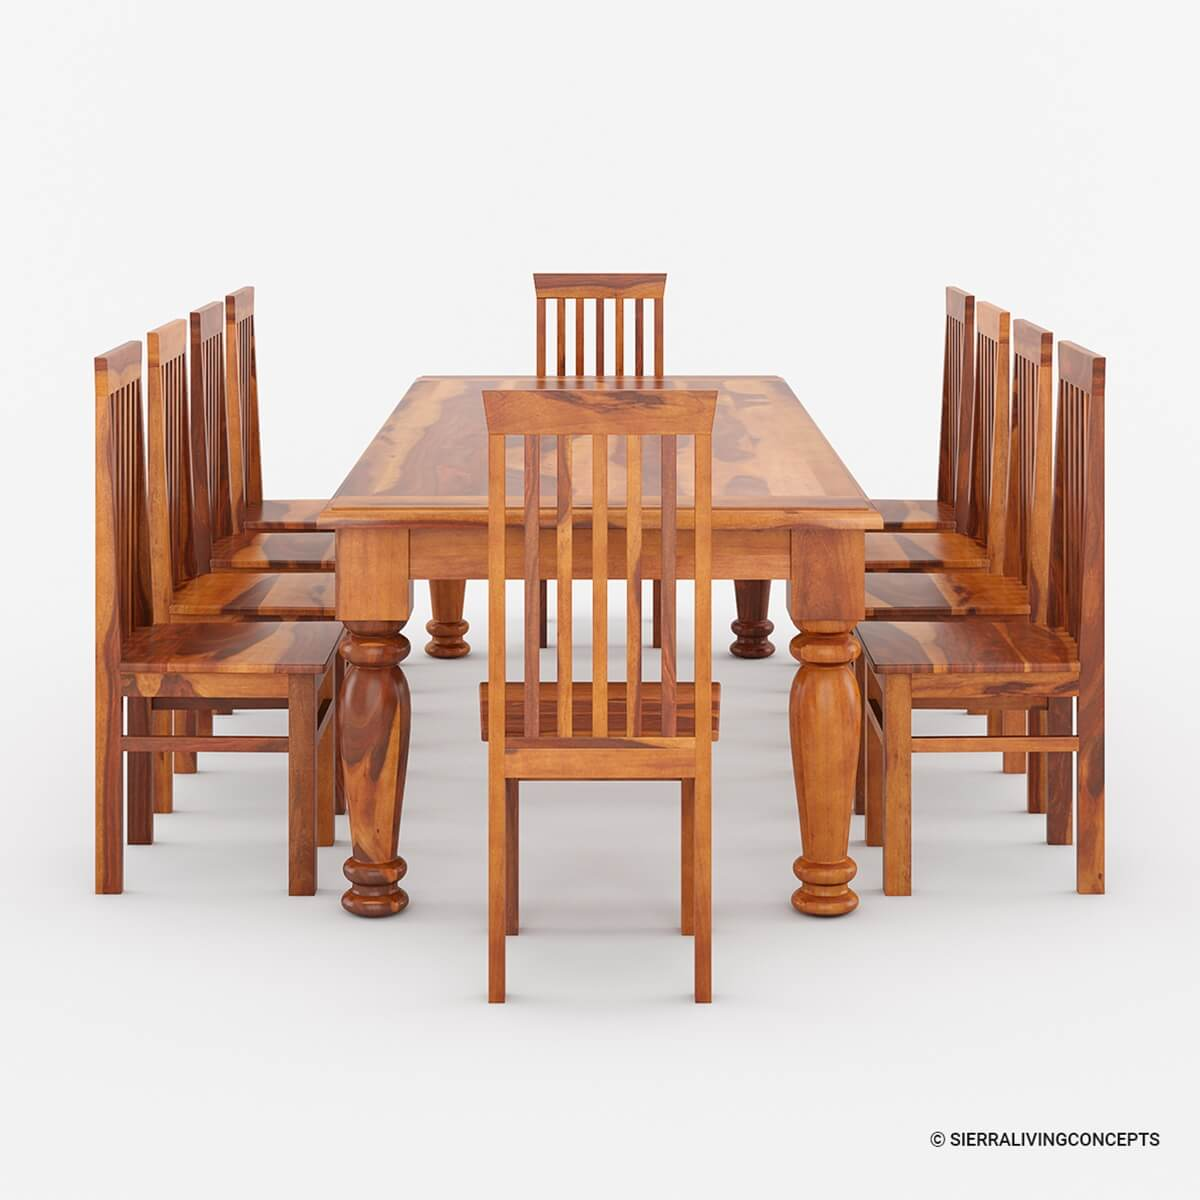 Large solid wood rustic dining table chair hutch set furniture for Dining room set with hutch